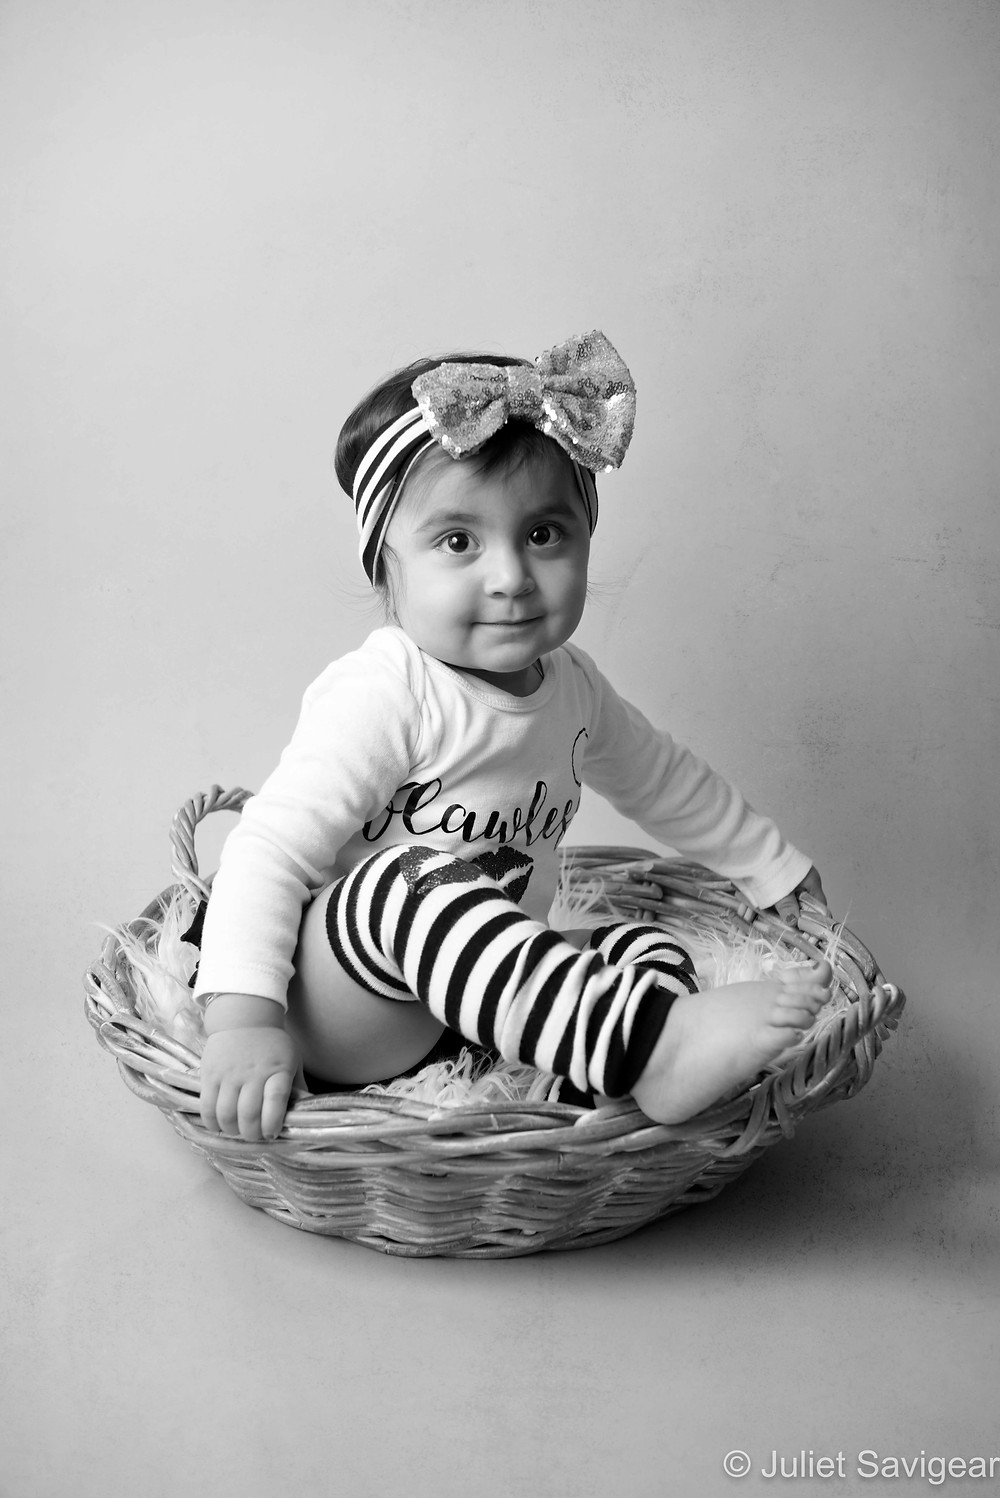 Baby Girl In A Basket - First Birthday Photography, London